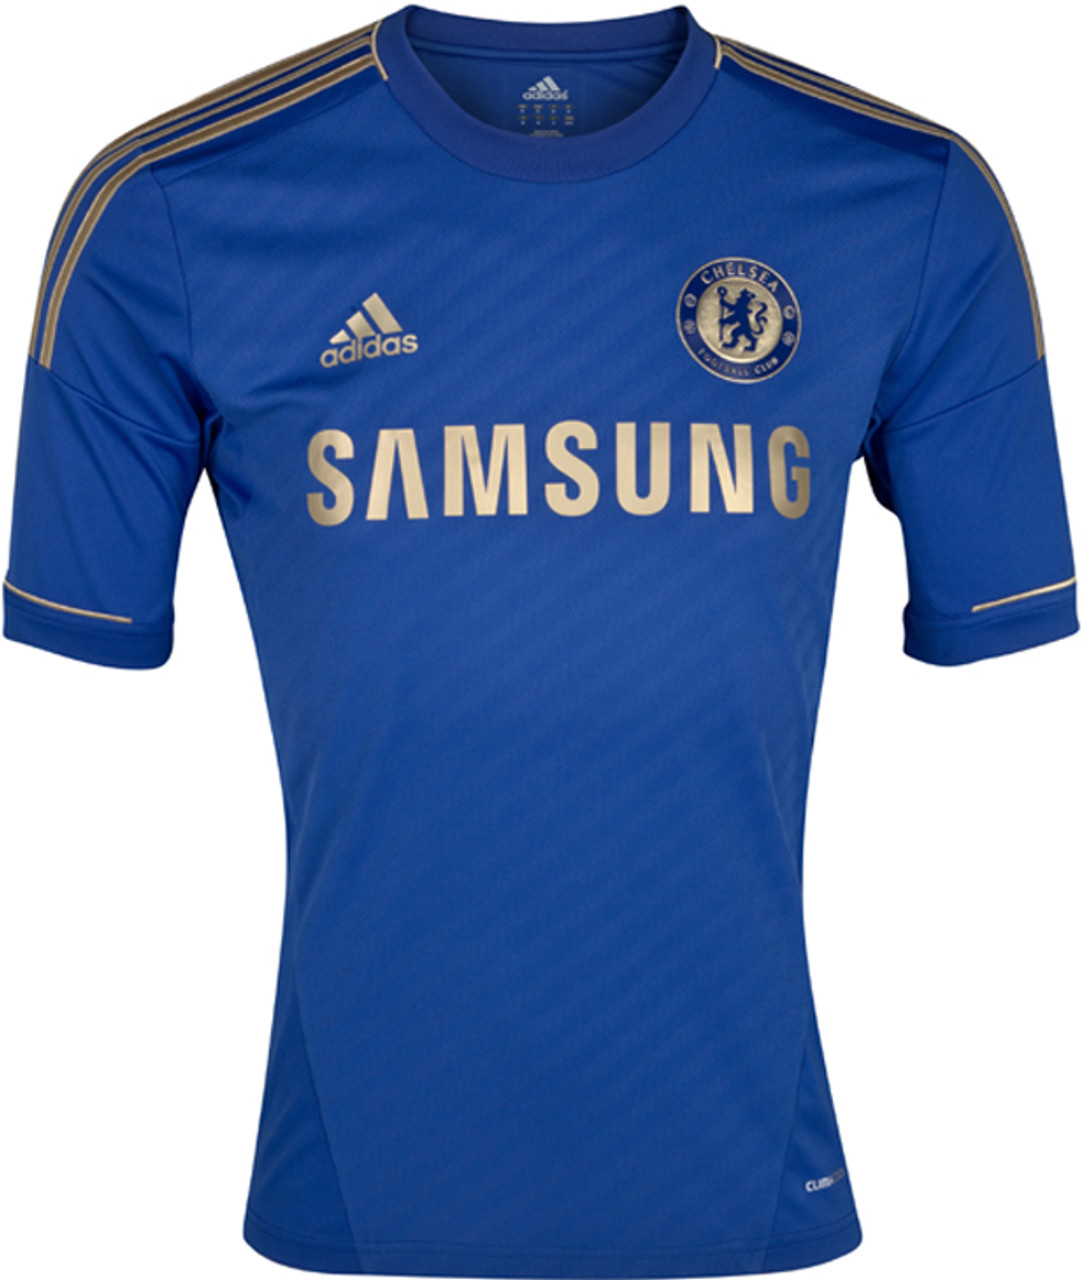 size 40 26761 e825f ADIDAS CHELSEA FC 2013 HOME JERSEY